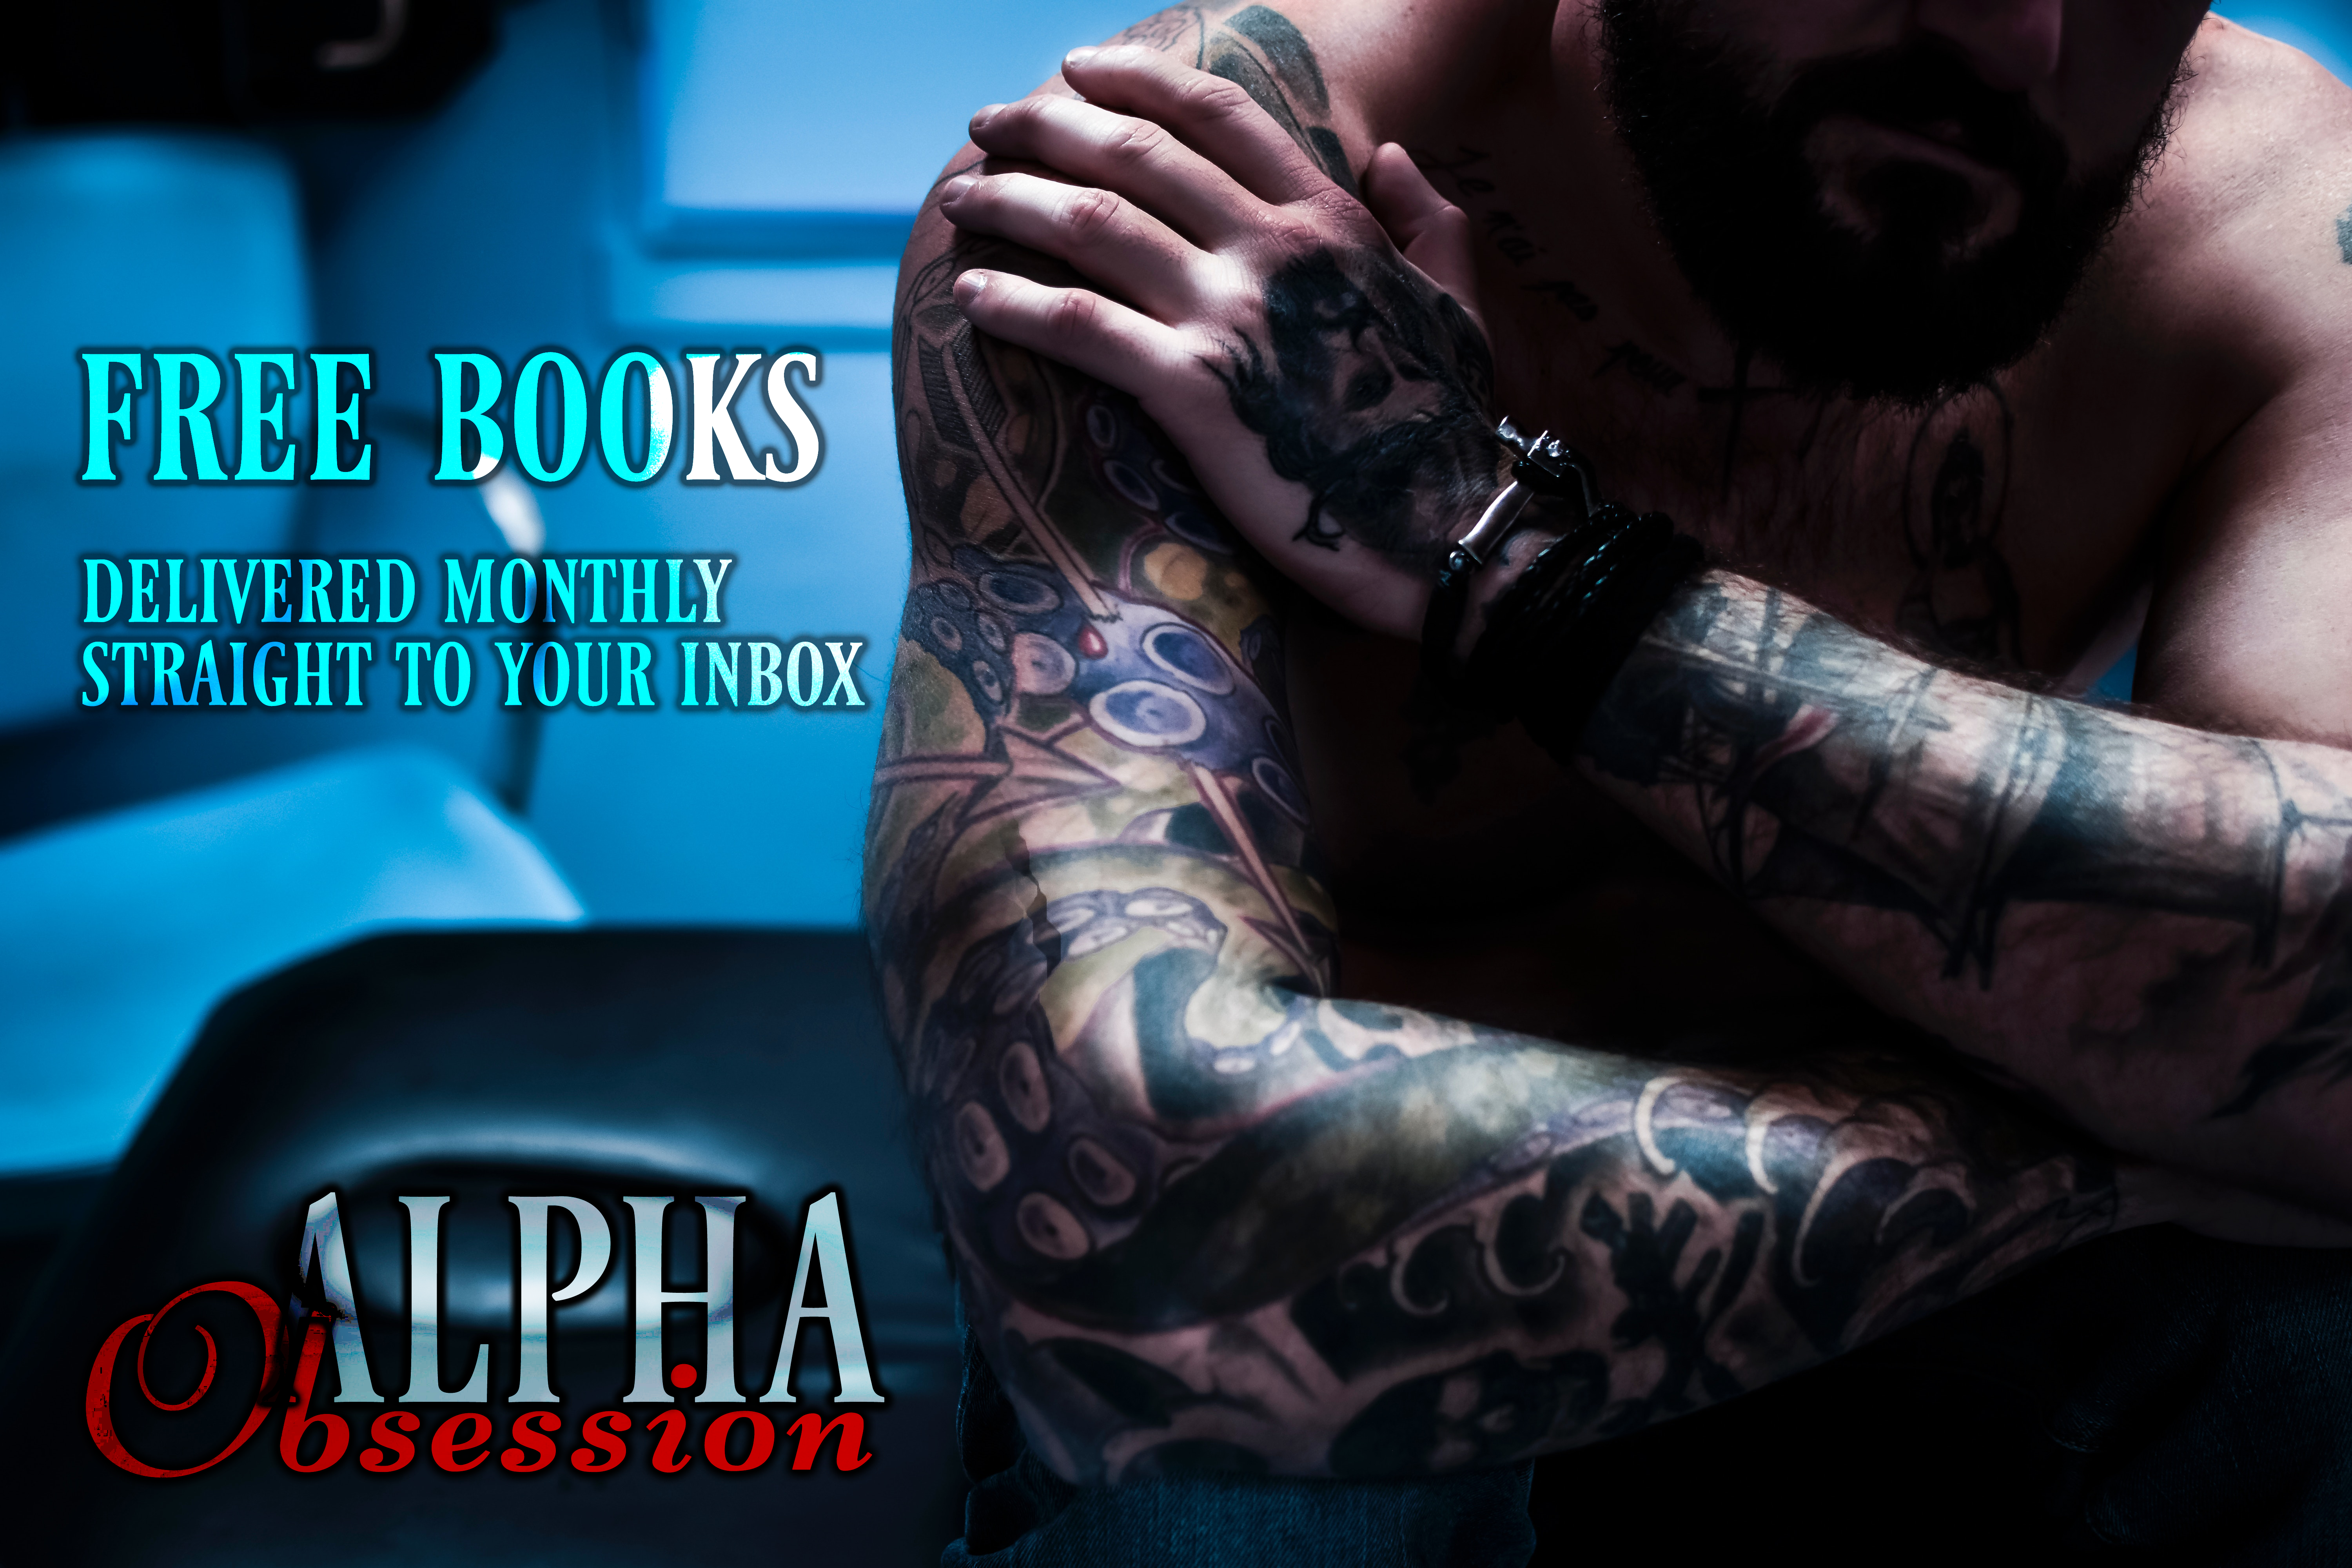 alpha obsession promo 1.png